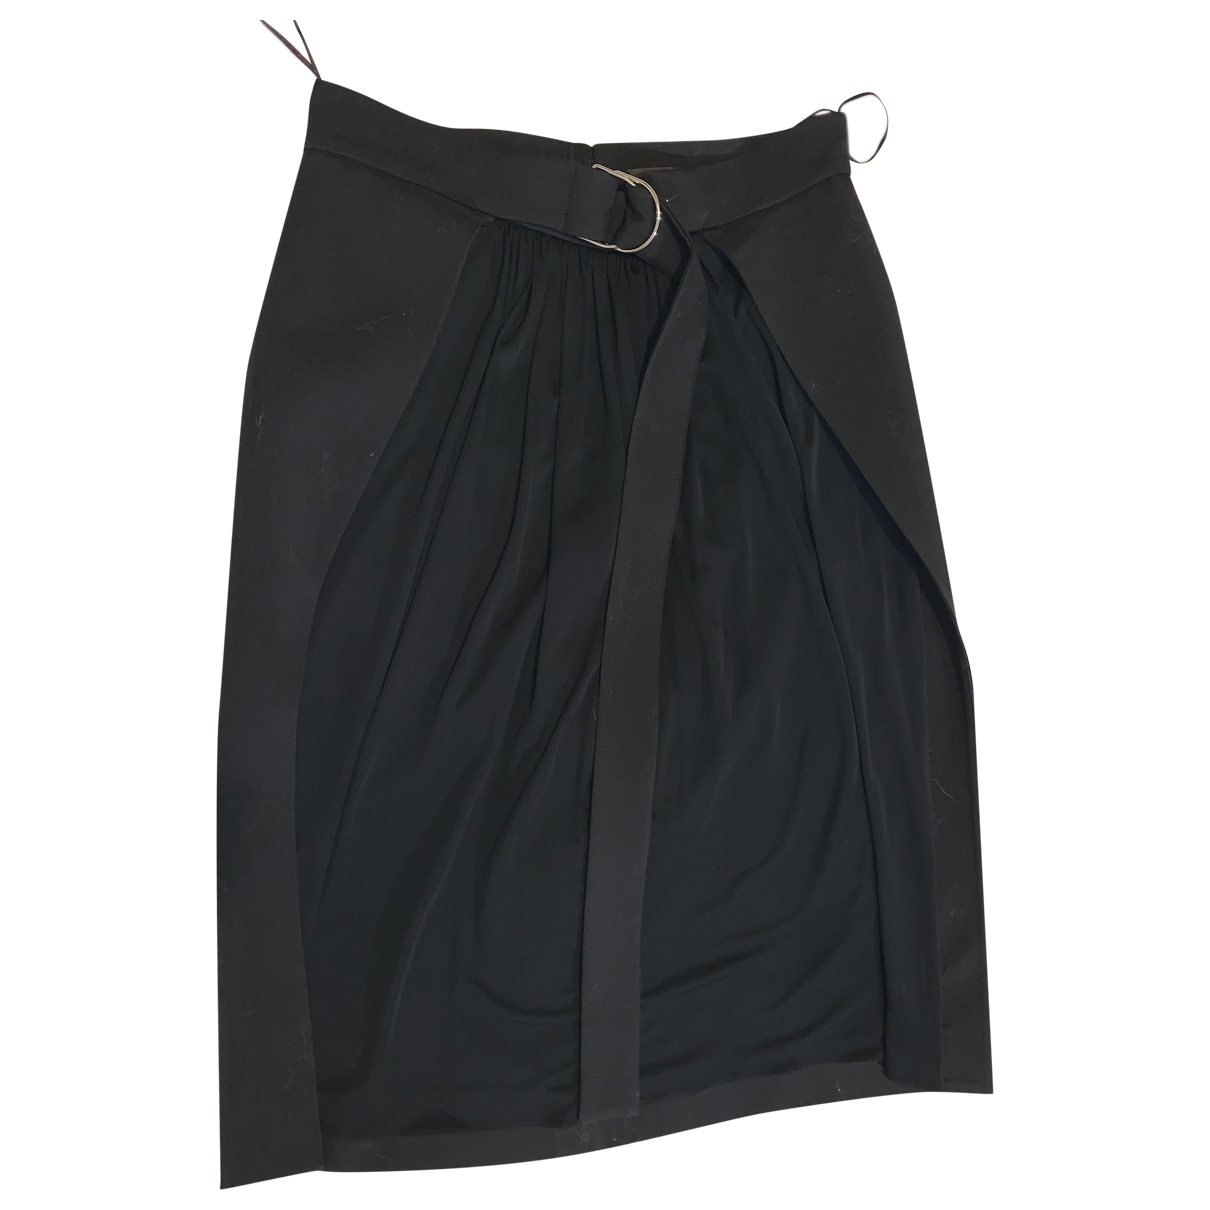 Louis Vuitton \N Black skirt for Women 36 FR